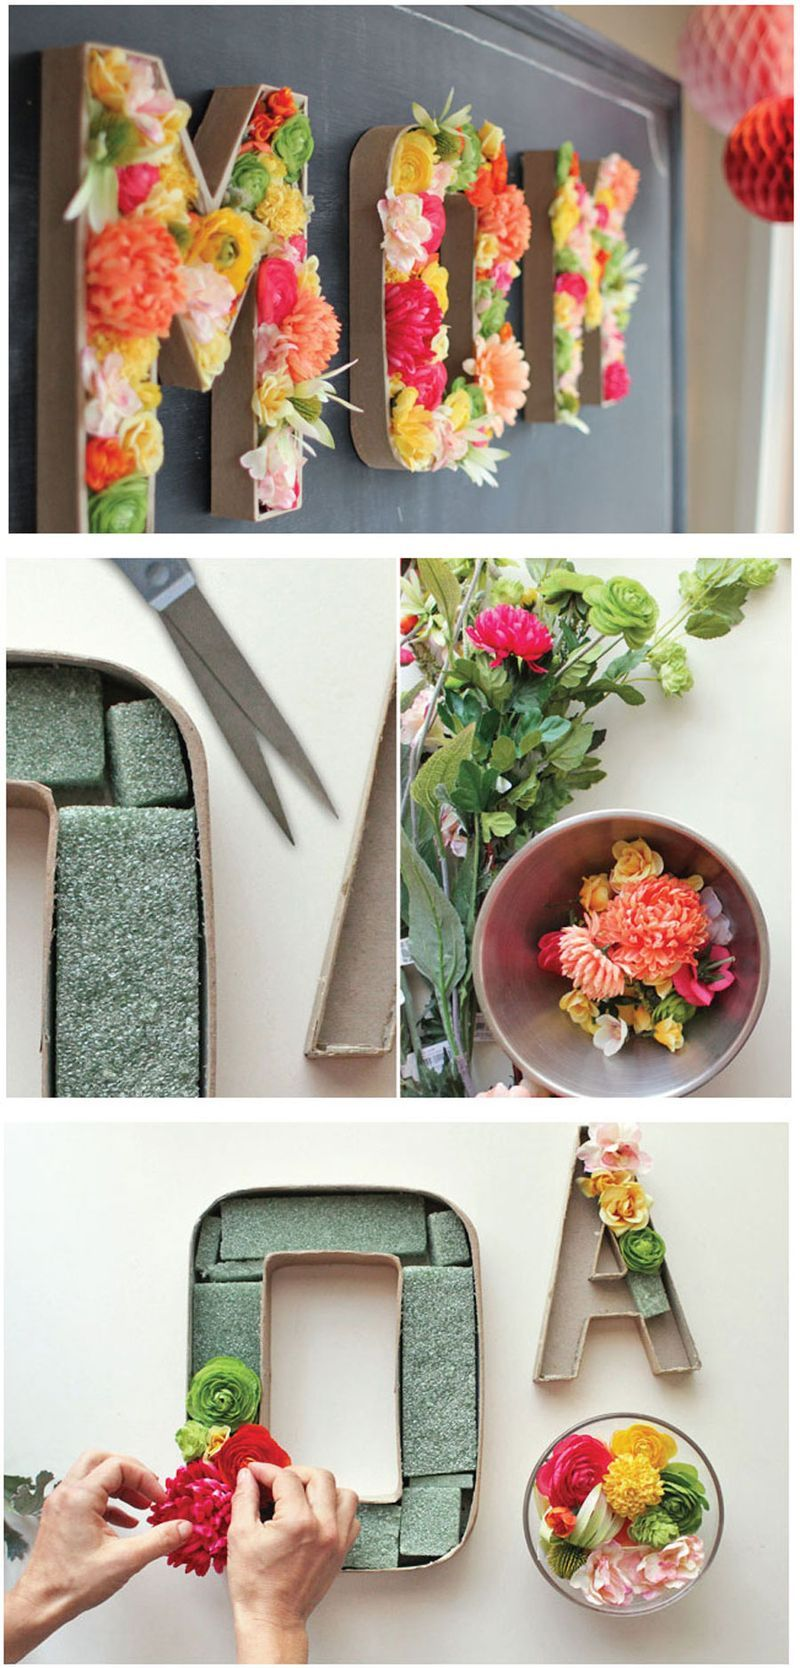 DIY Blooming Monogram Perfect For Wedding Decor Use Silk Or Dried Flowers In Florist Foam The Hollowed Out Craft Letter You Also Could Make Wine Cork